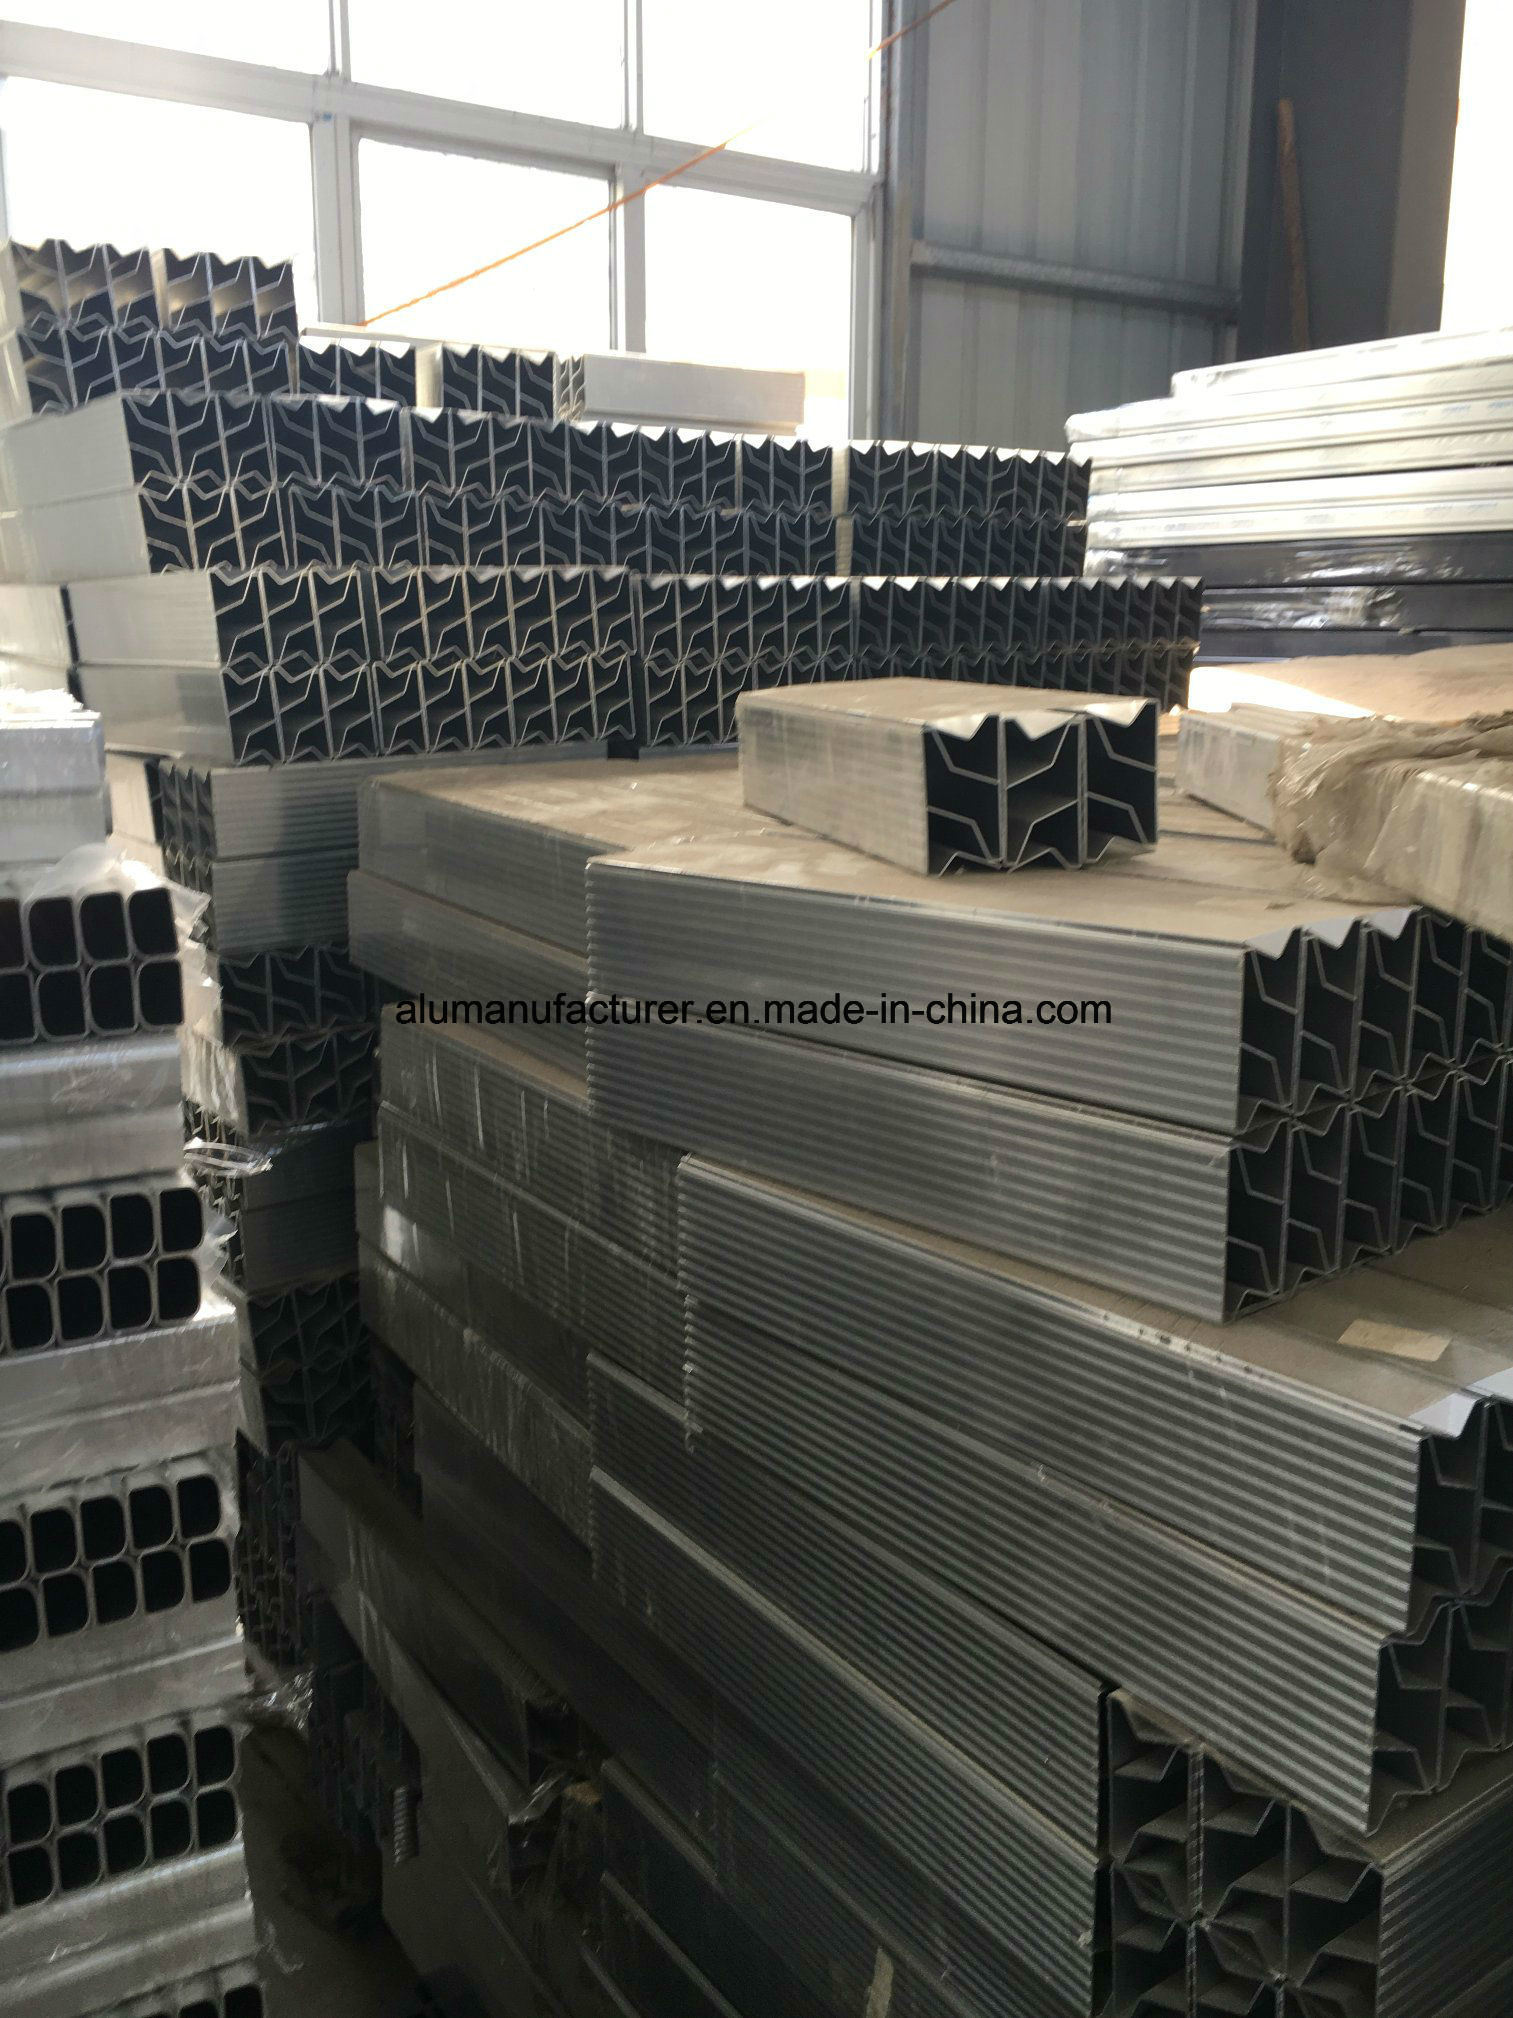 American Ladder Aluminium Alloy Extrusion Profile for Door and Window (02 Series)